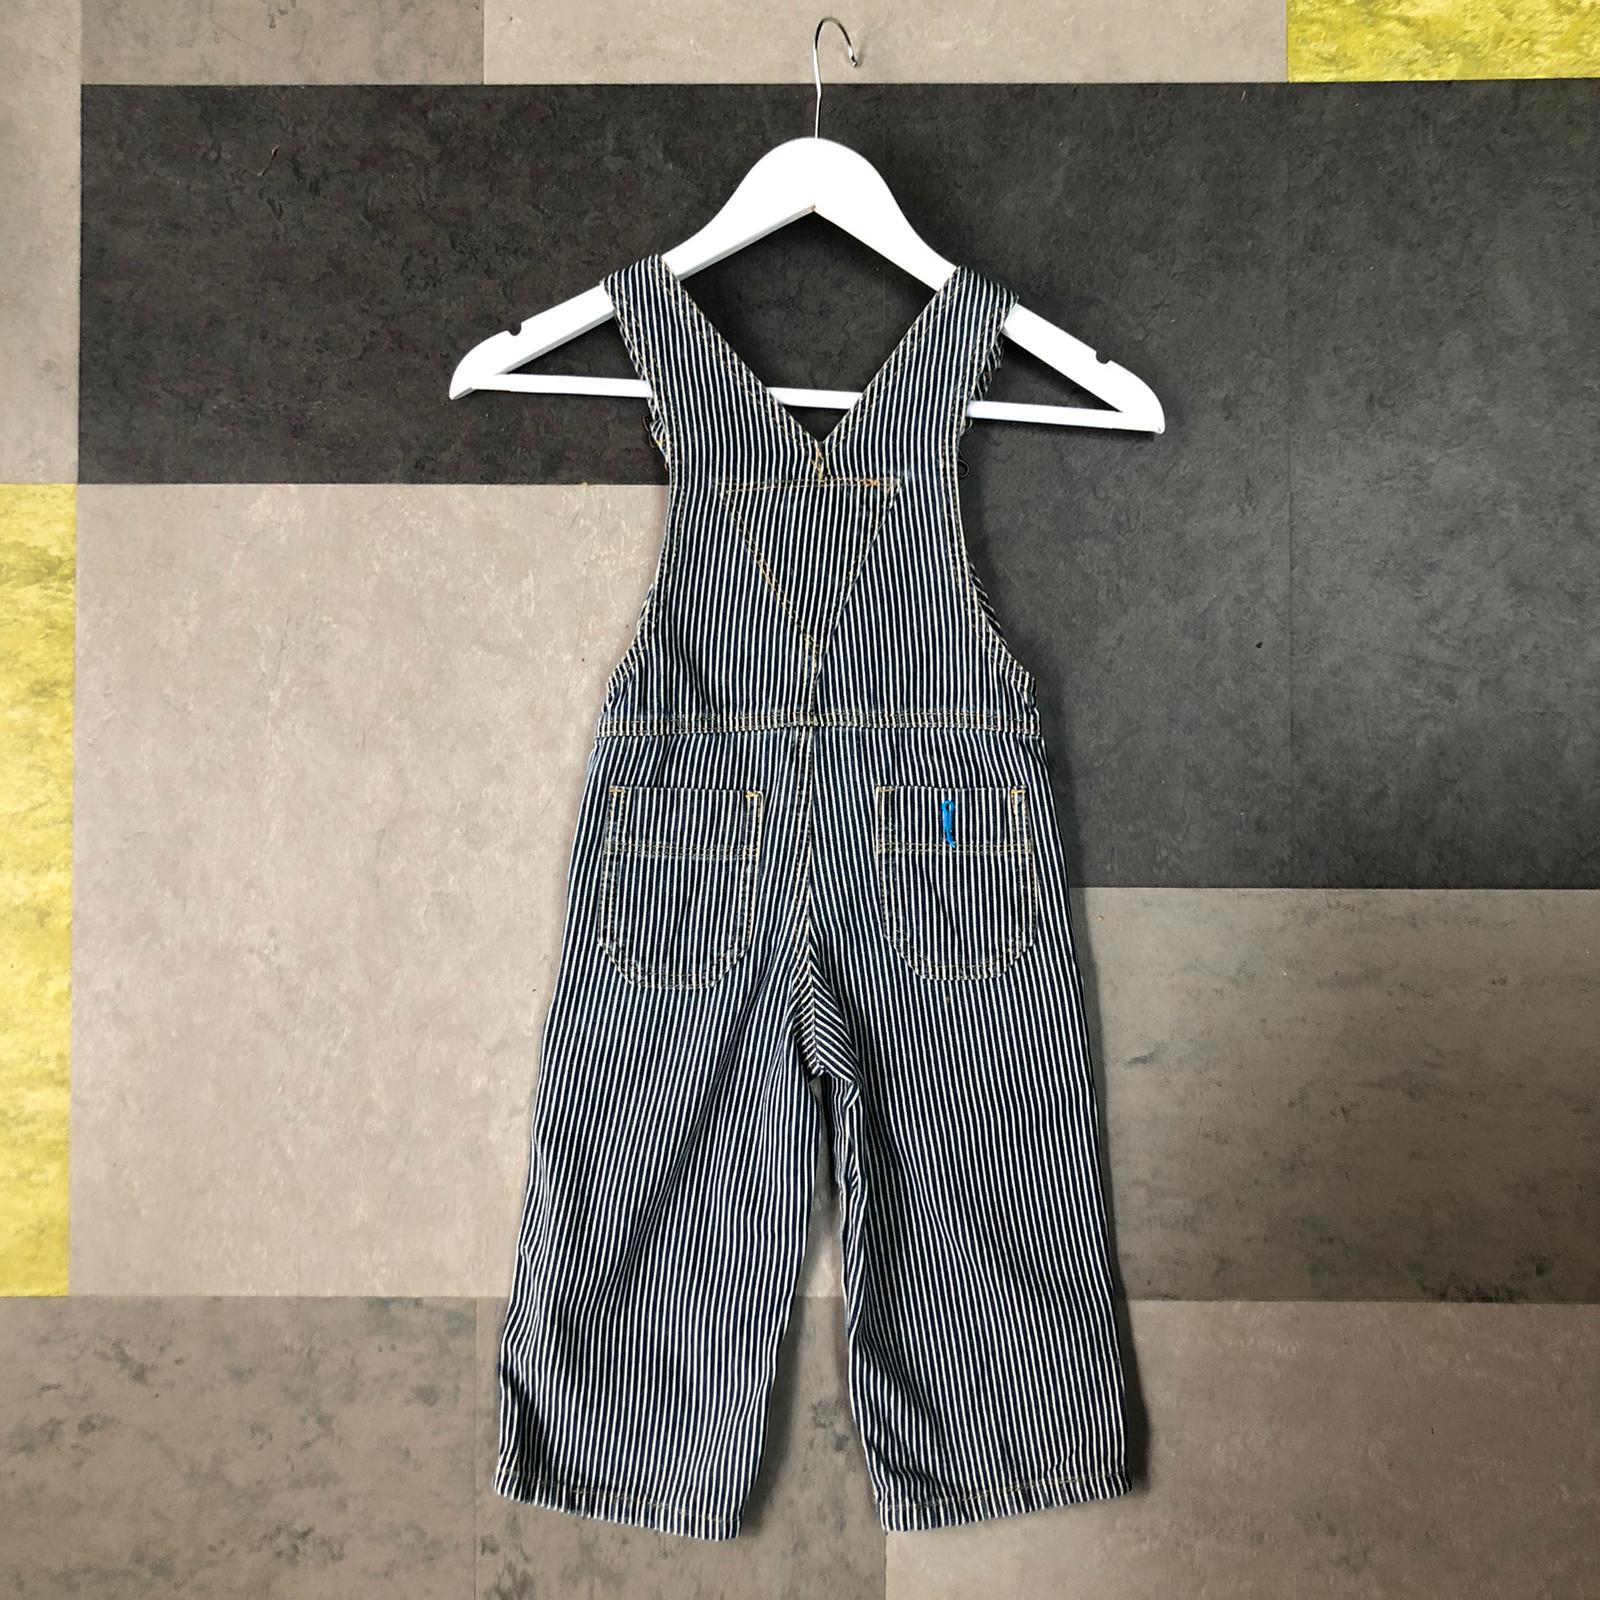 Vintage kids hickory dungarees- age 1-2